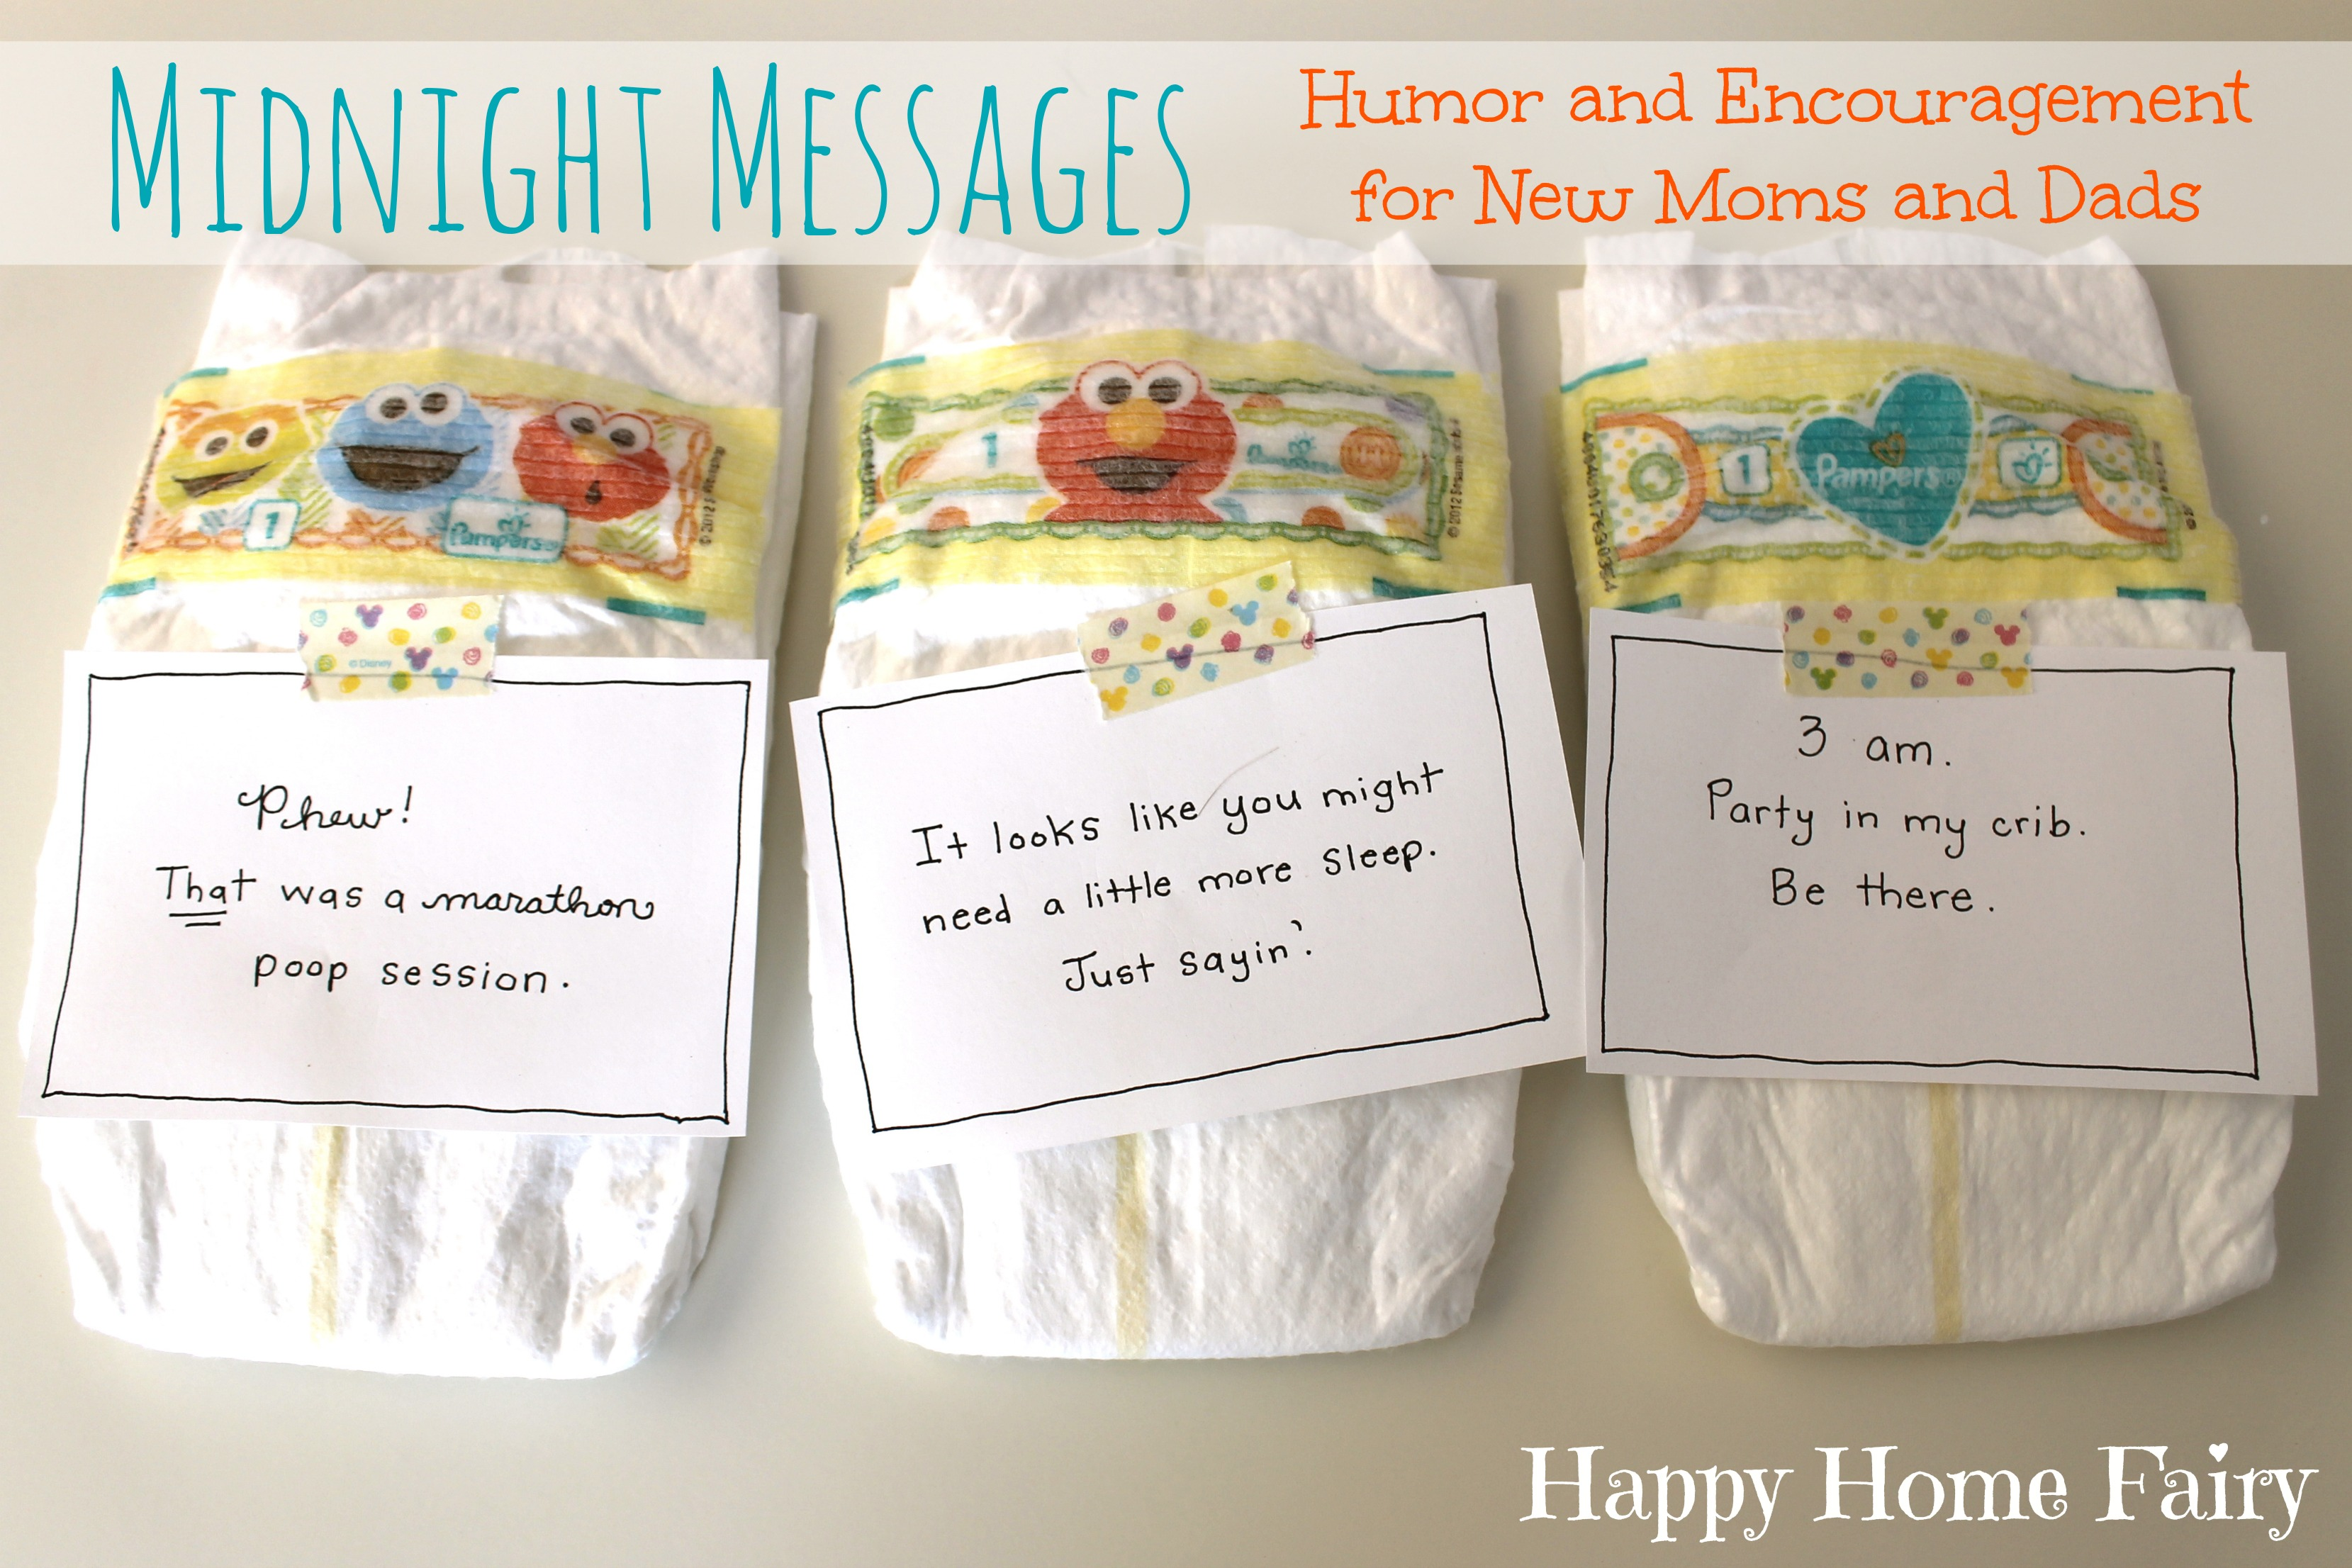 image regarding Words for the Wee Hours Free Printable identified as Midnight Messages for Clean Mommies - No cost Printable